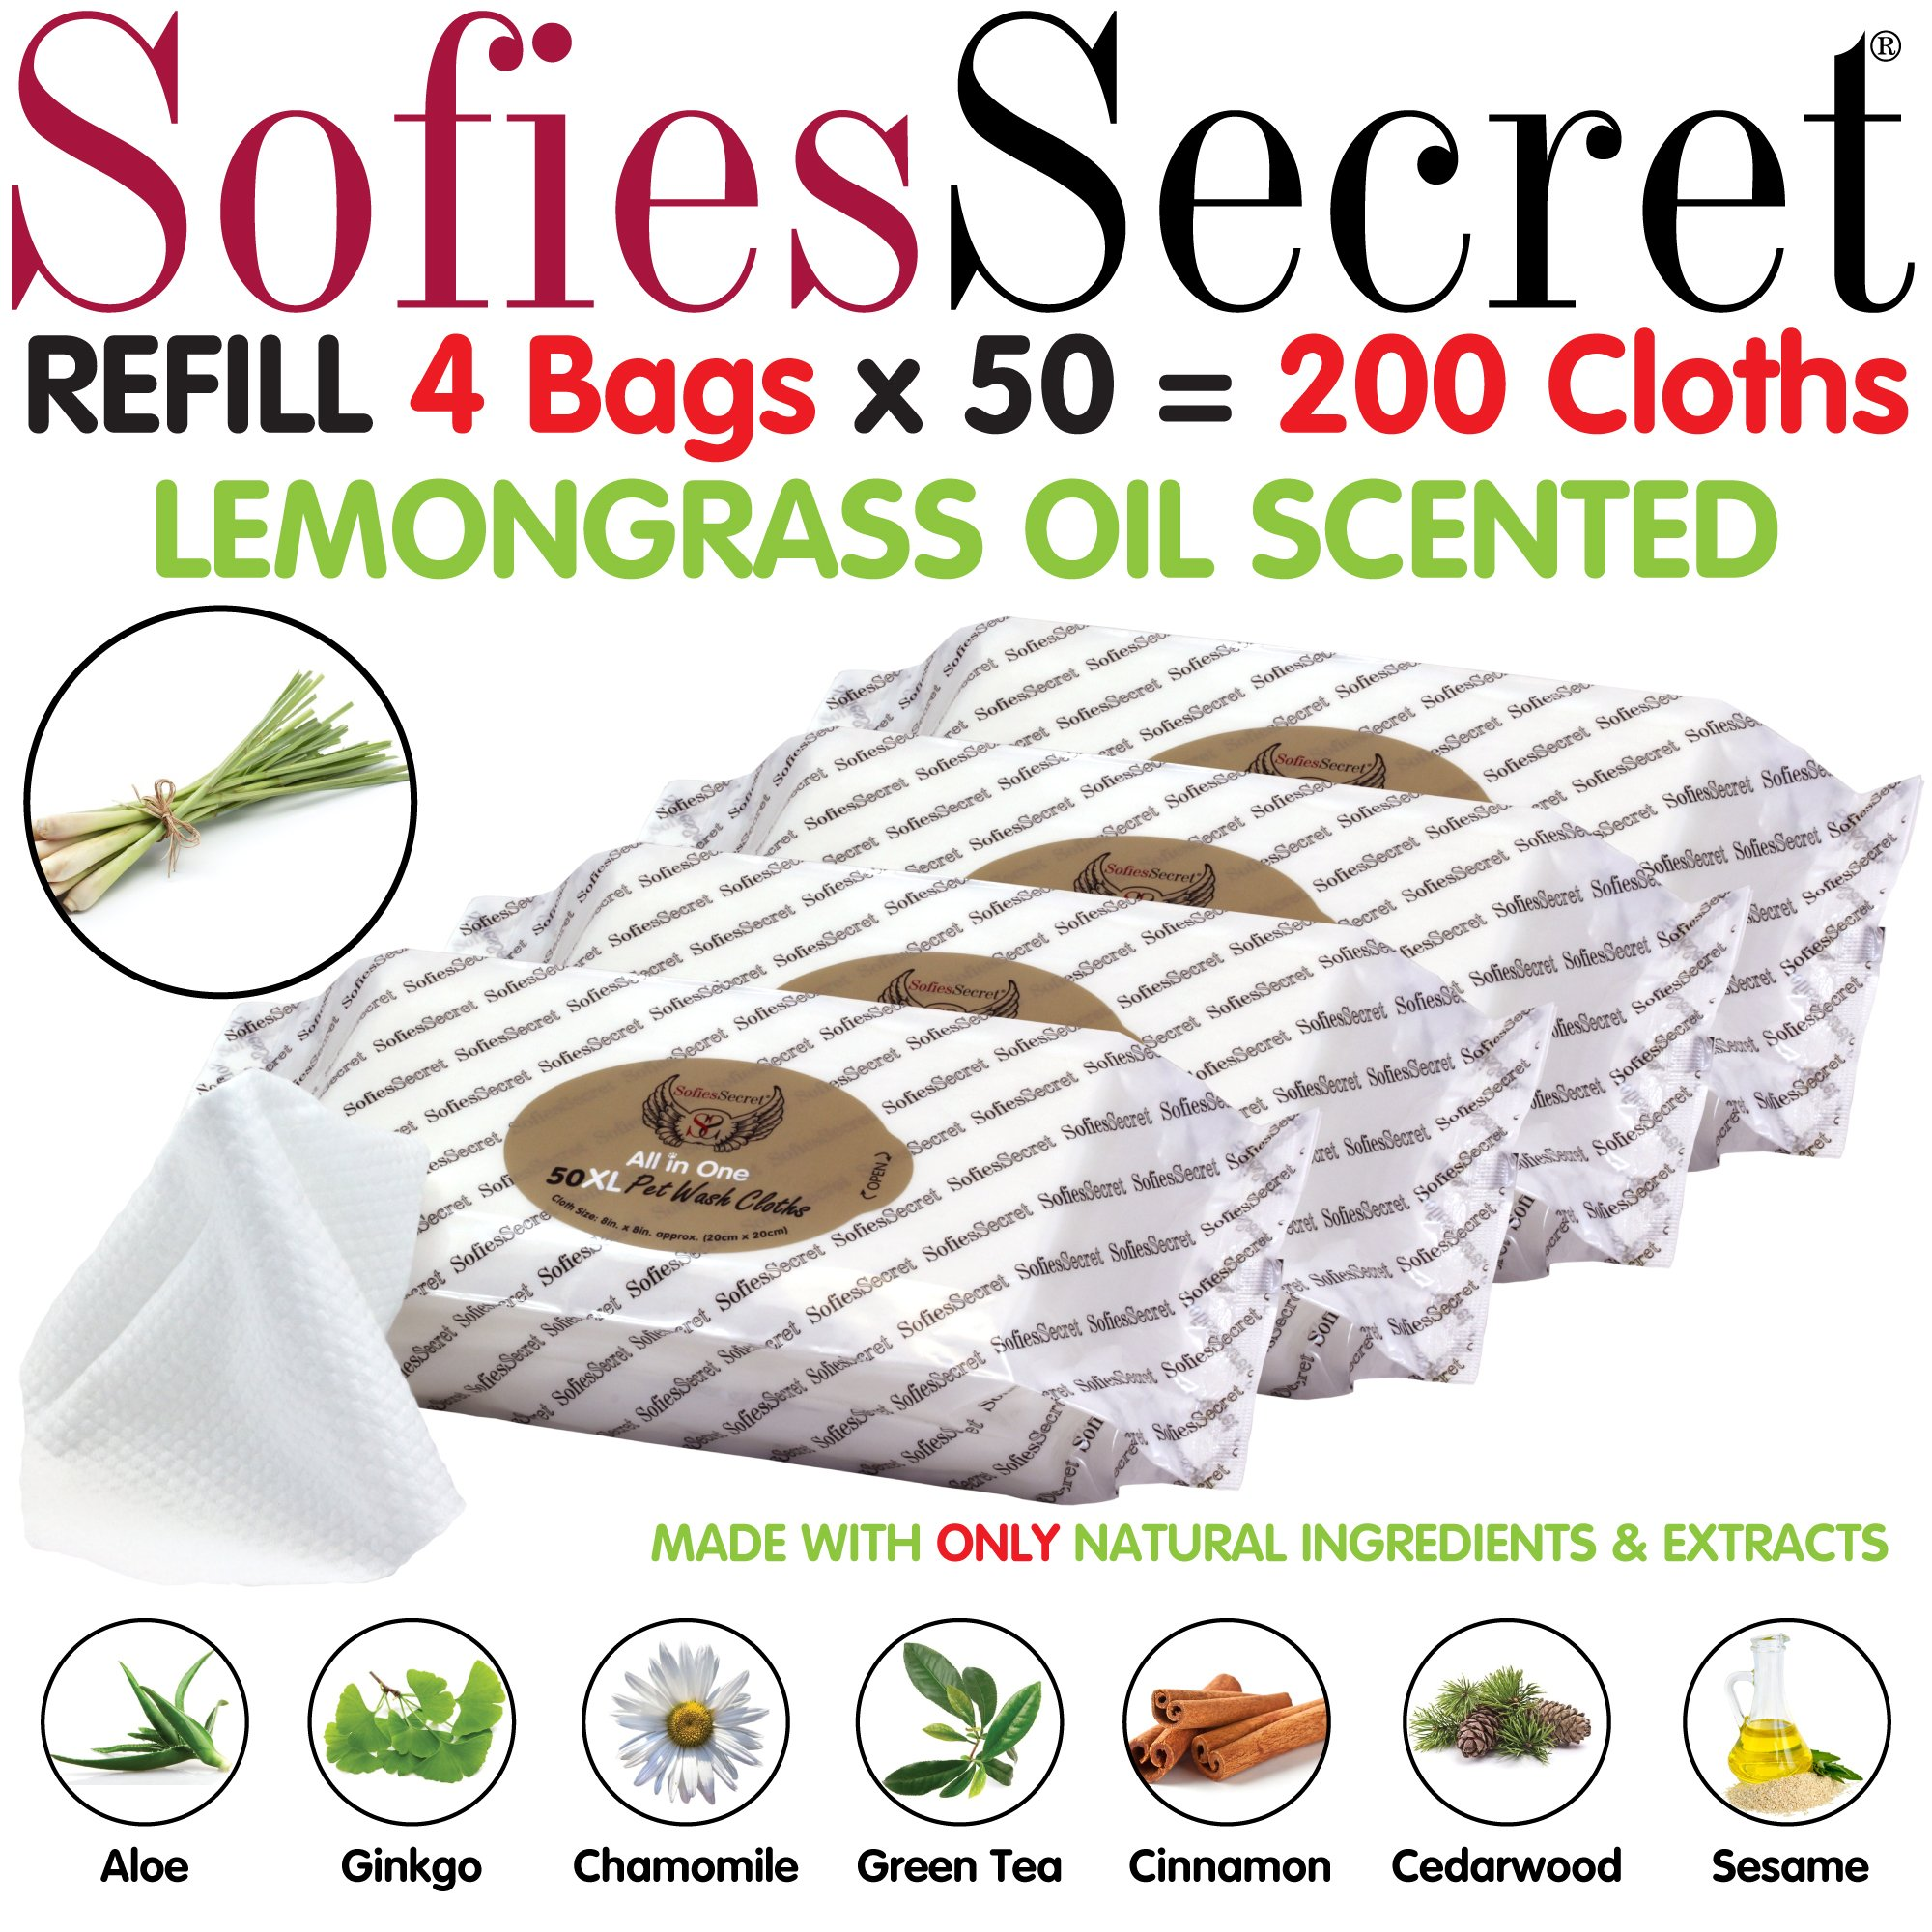 SofiesSecret XL PET Wipes, 200 XL, Lemongrass Oil, All in One Grooming, for Paws, Coat, Skin, Face, Ears and Teeth, Made with only Naturally derived Ingredients, Oils & Extra, Cruelty Free and Vegan by SofiesSecret